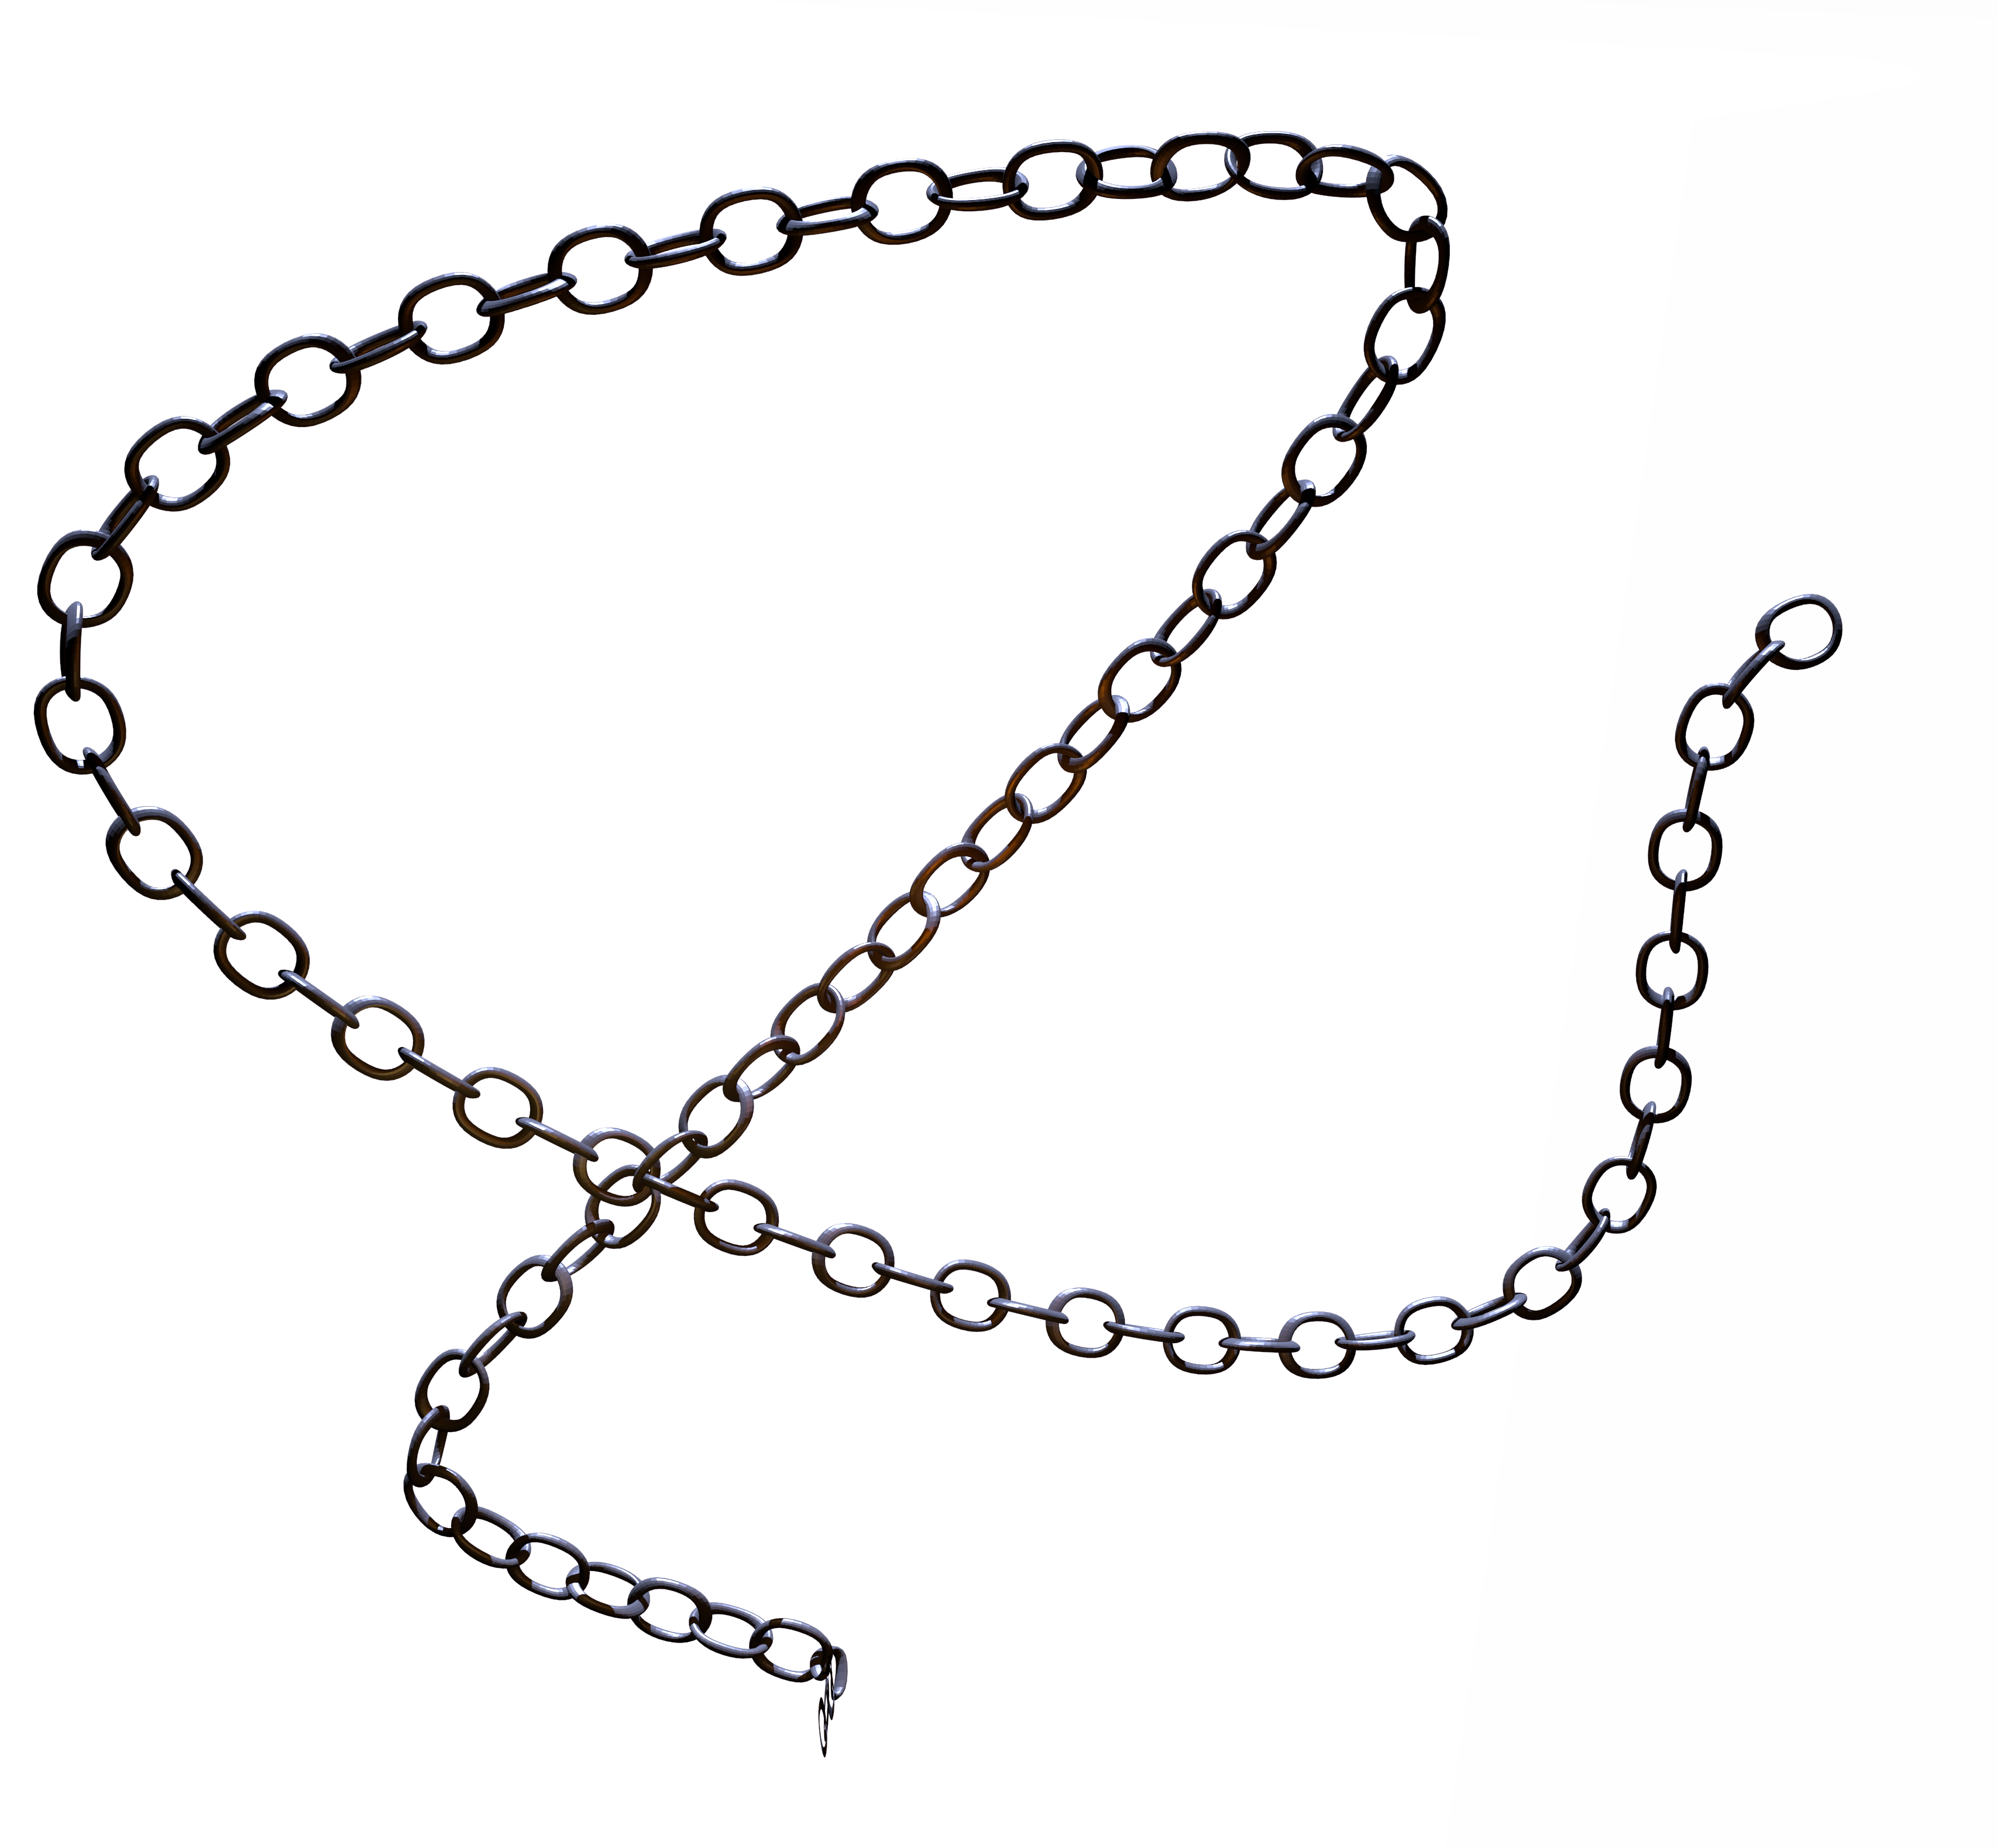 chain5.png